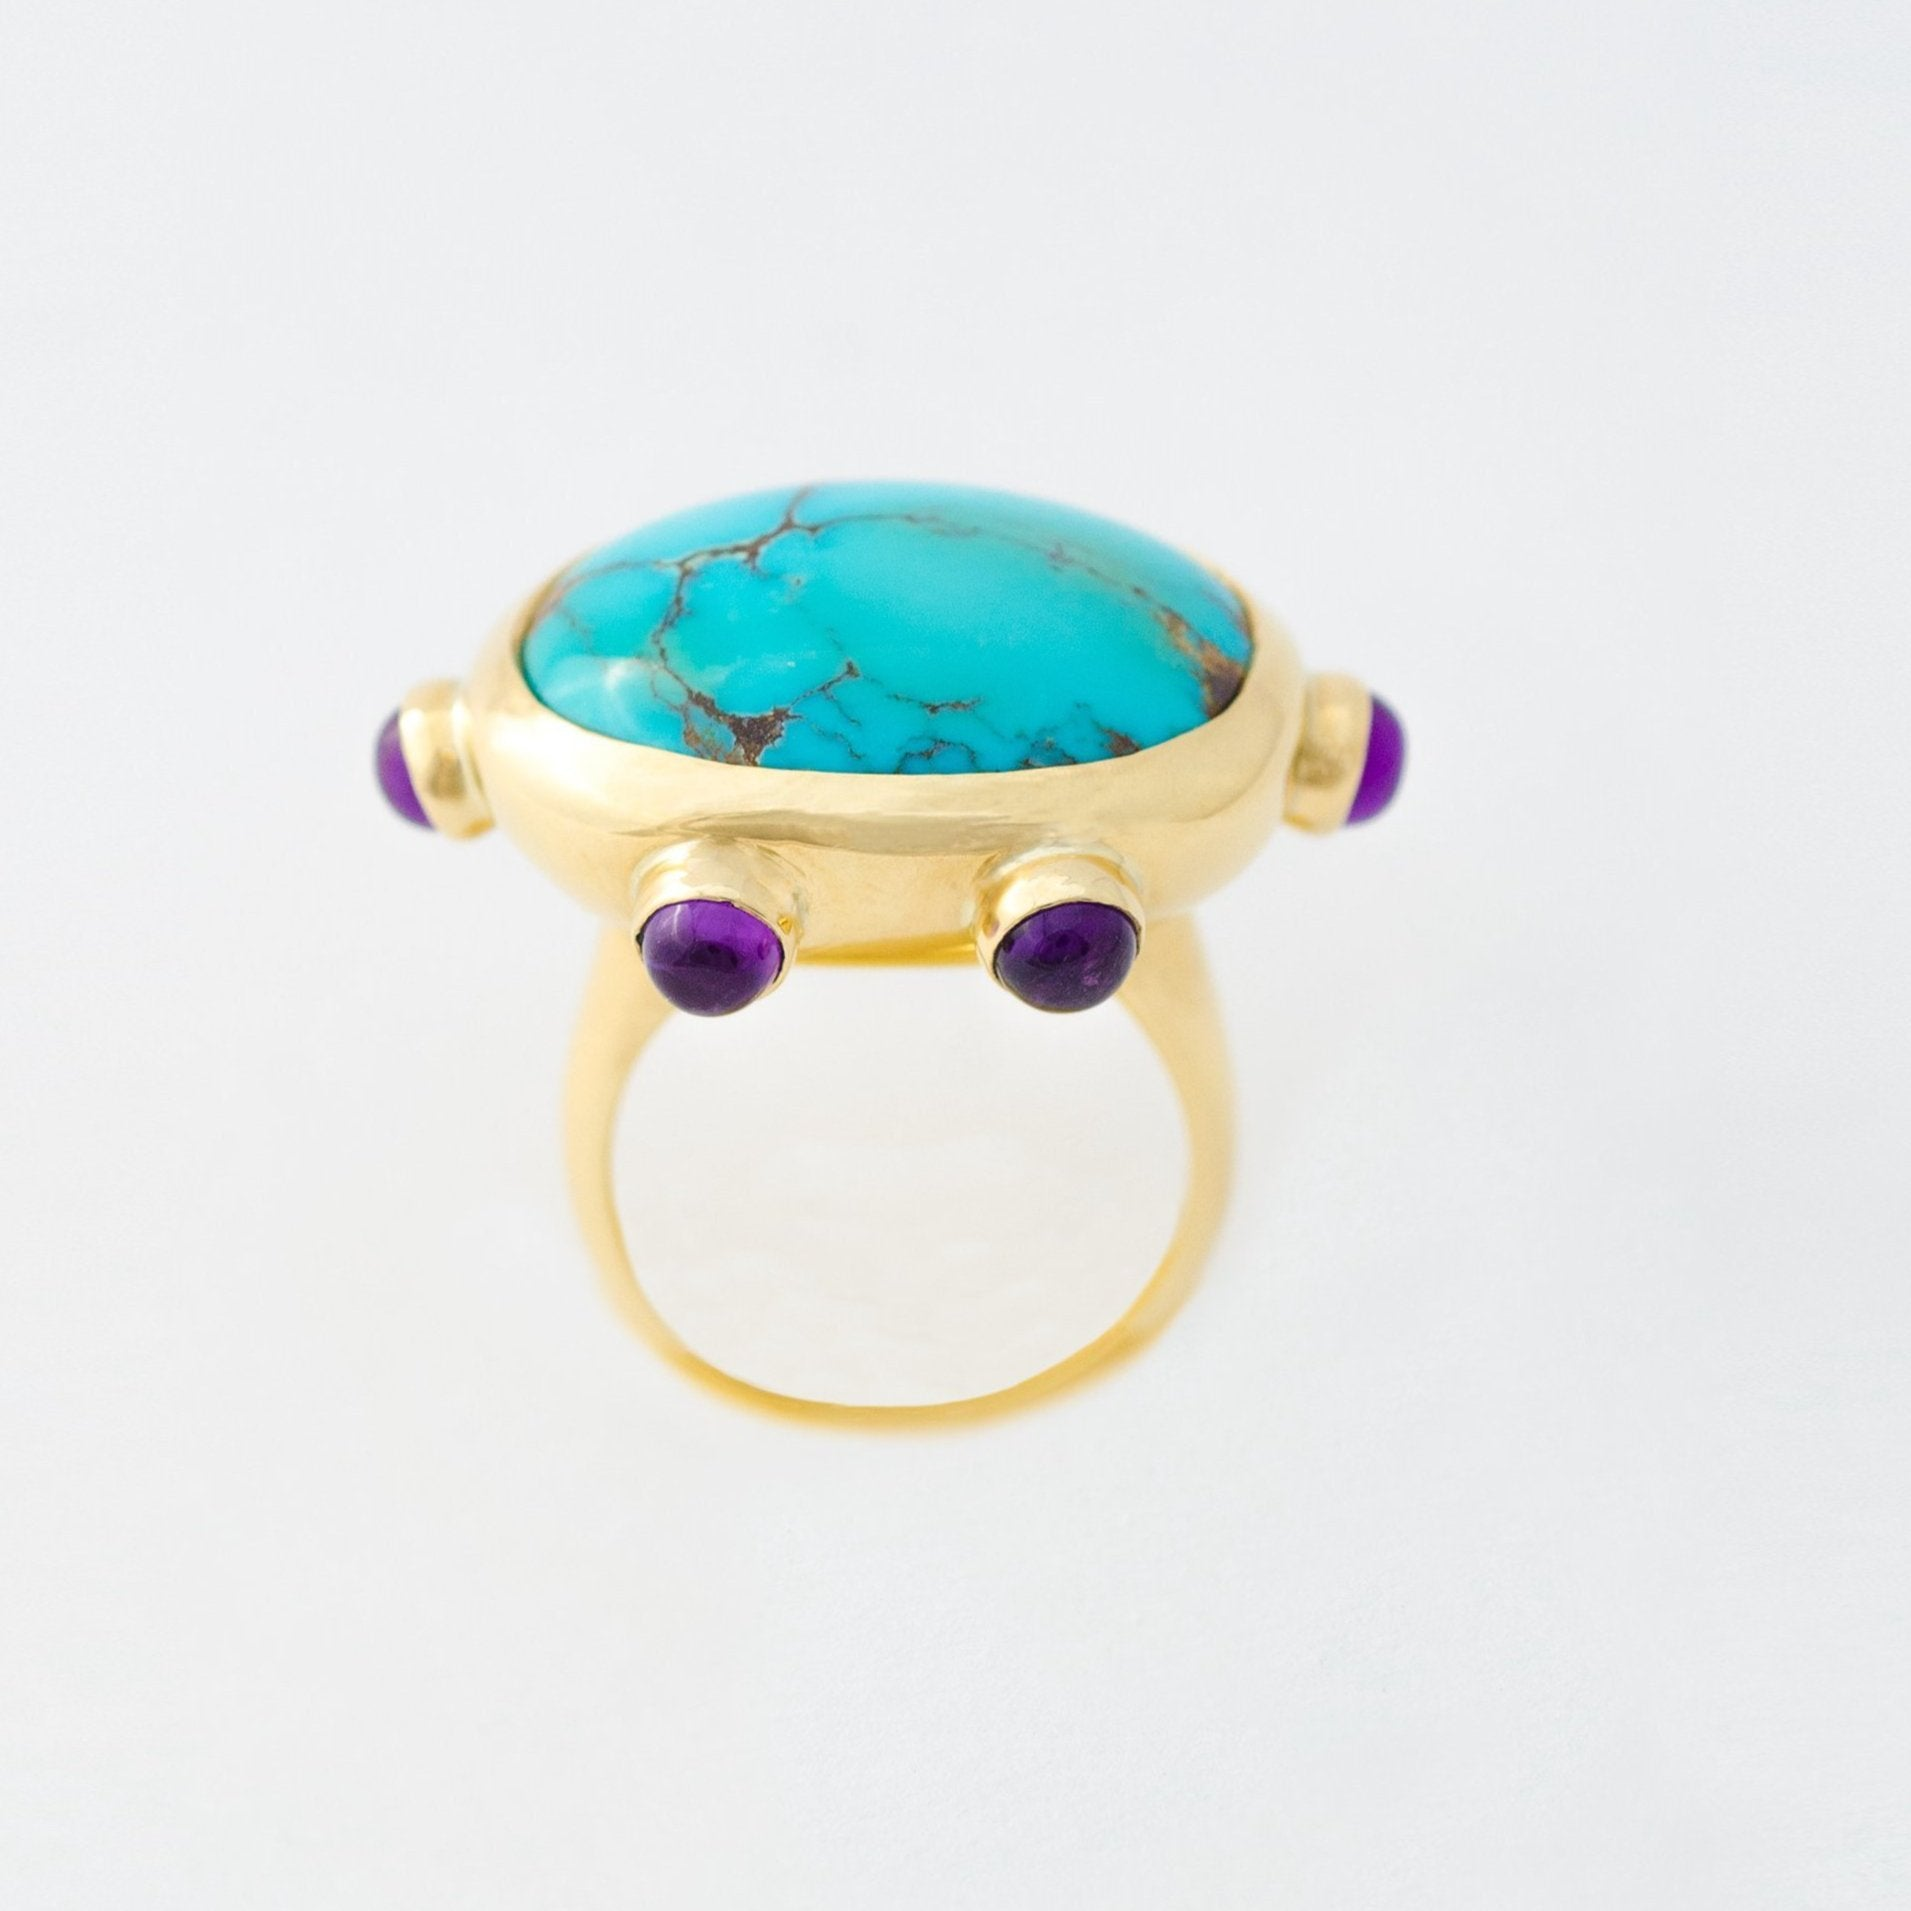 Turquoise & Amethyst One-of-a-kind Gold Ring